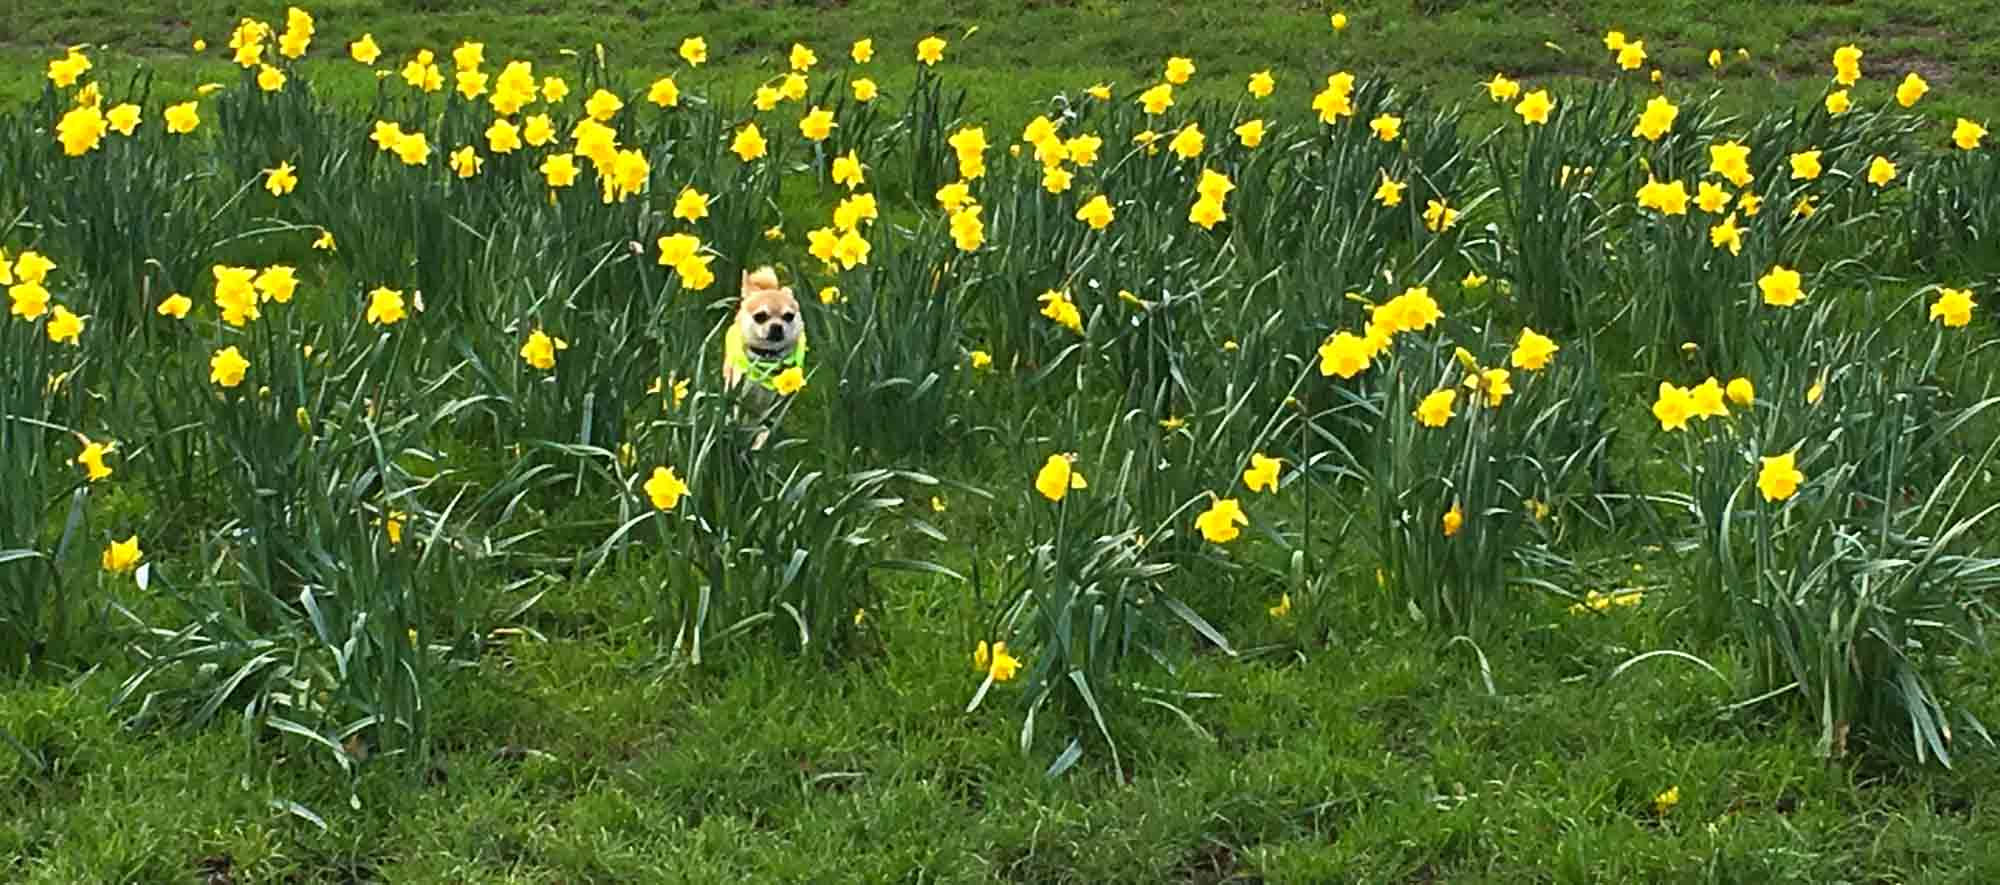 Dog Blog Game: Can you see me?